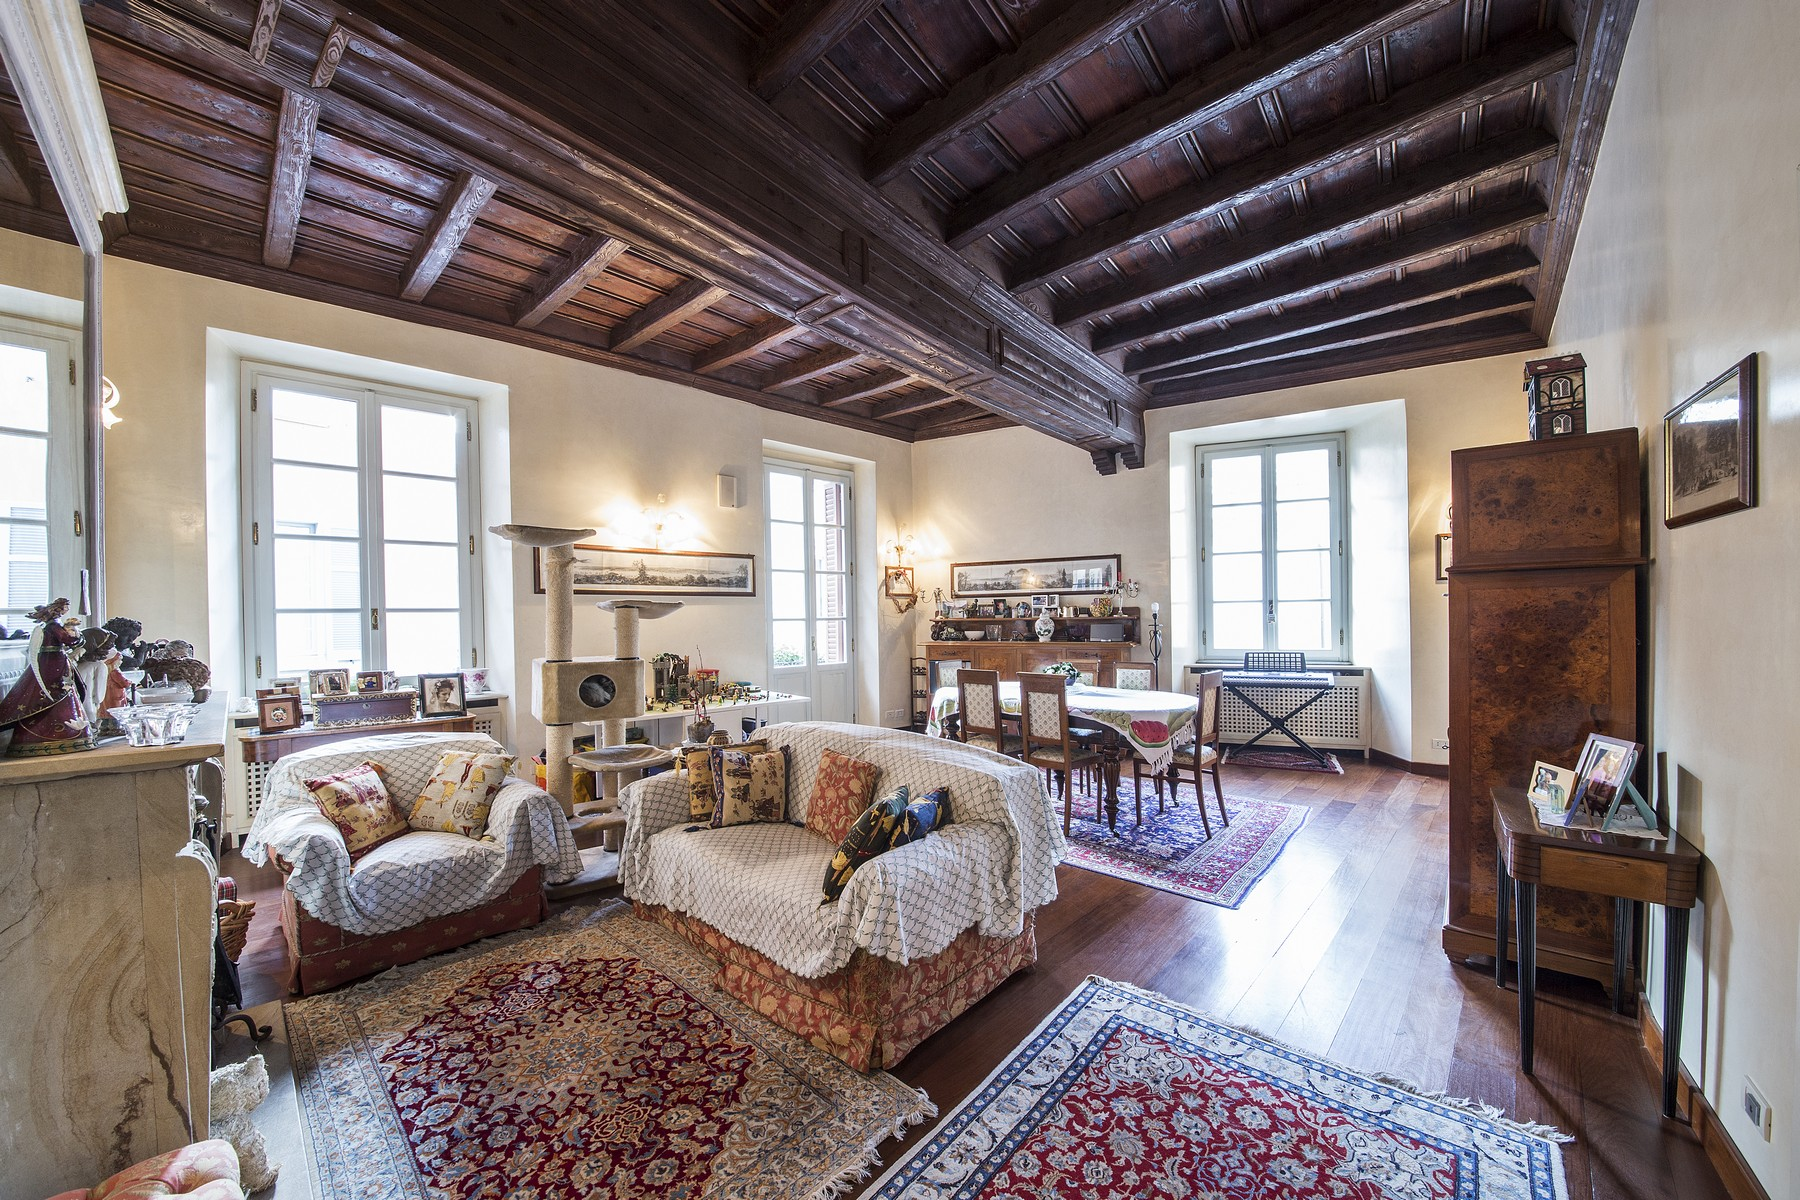 Apartment for Sale at Wonderful apartment in prestigious building in the center of Como Via Bonanomi Como, Como 22100 Italy